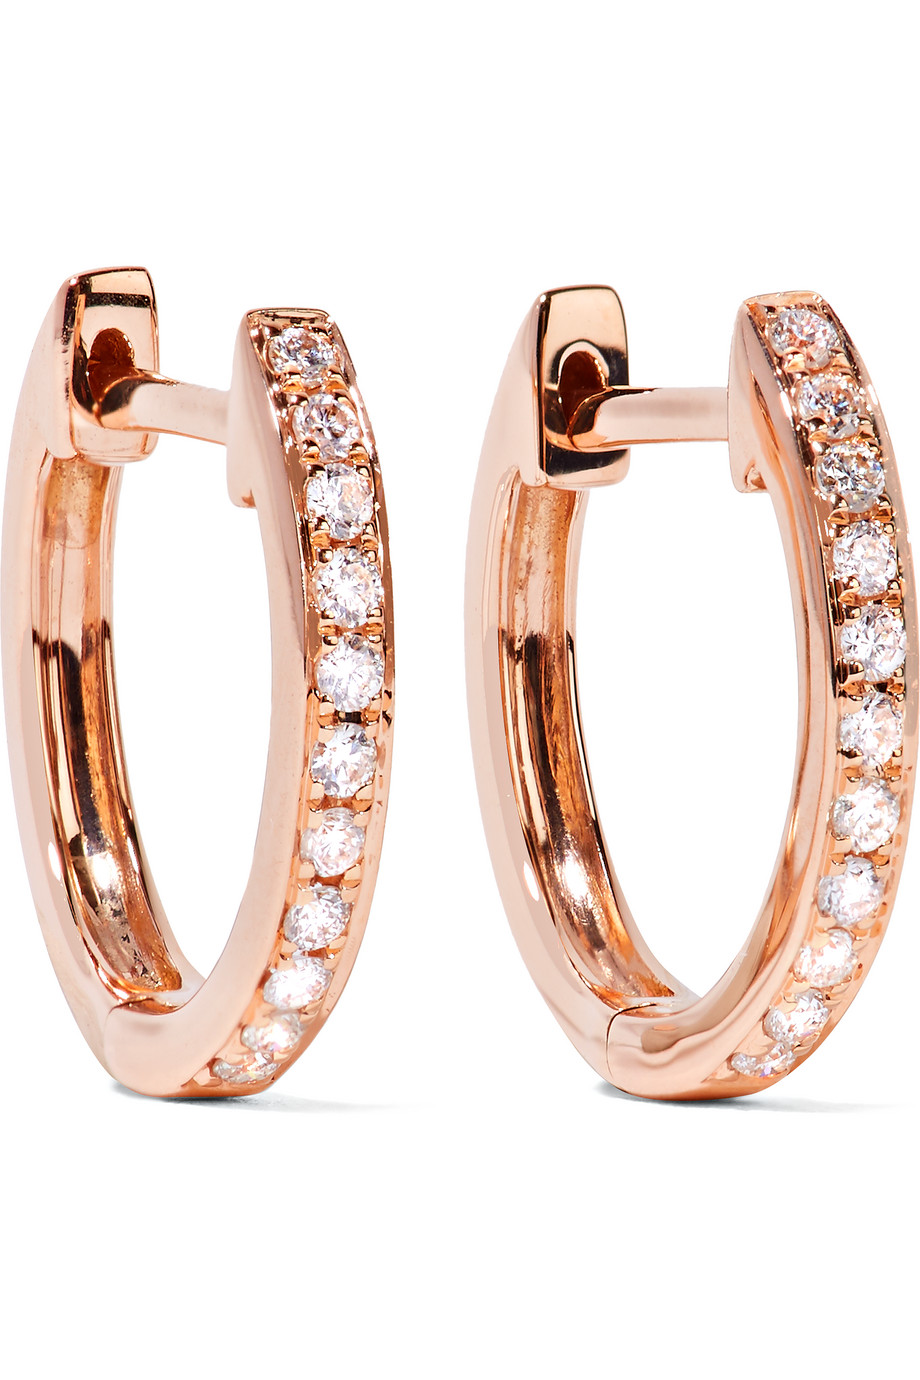 Anita Ko Huggy 18-Karat Rose Gold Diamond Earrings